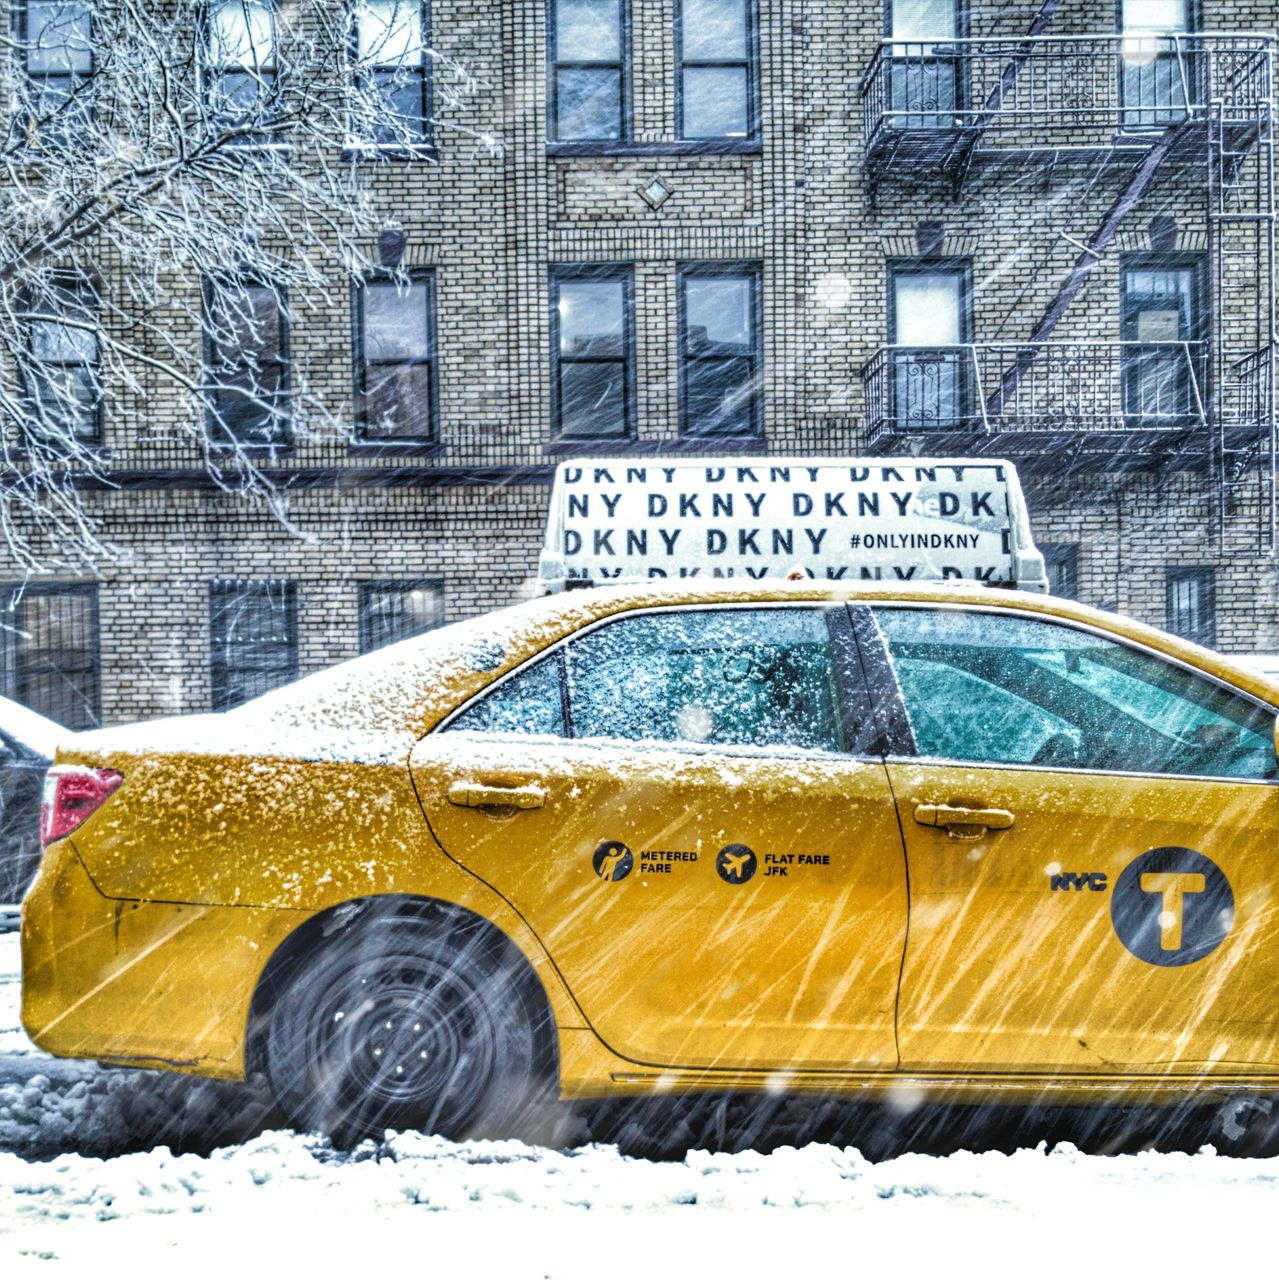 snow, architecture, mode of transportation, winter, built structure, cold temperature, yellow, car, day, building exterior, motor vehicle, transportation, land vehicle, city, building, no people, nature, taxi, text, outdoors, snowing, blizzard, school bus